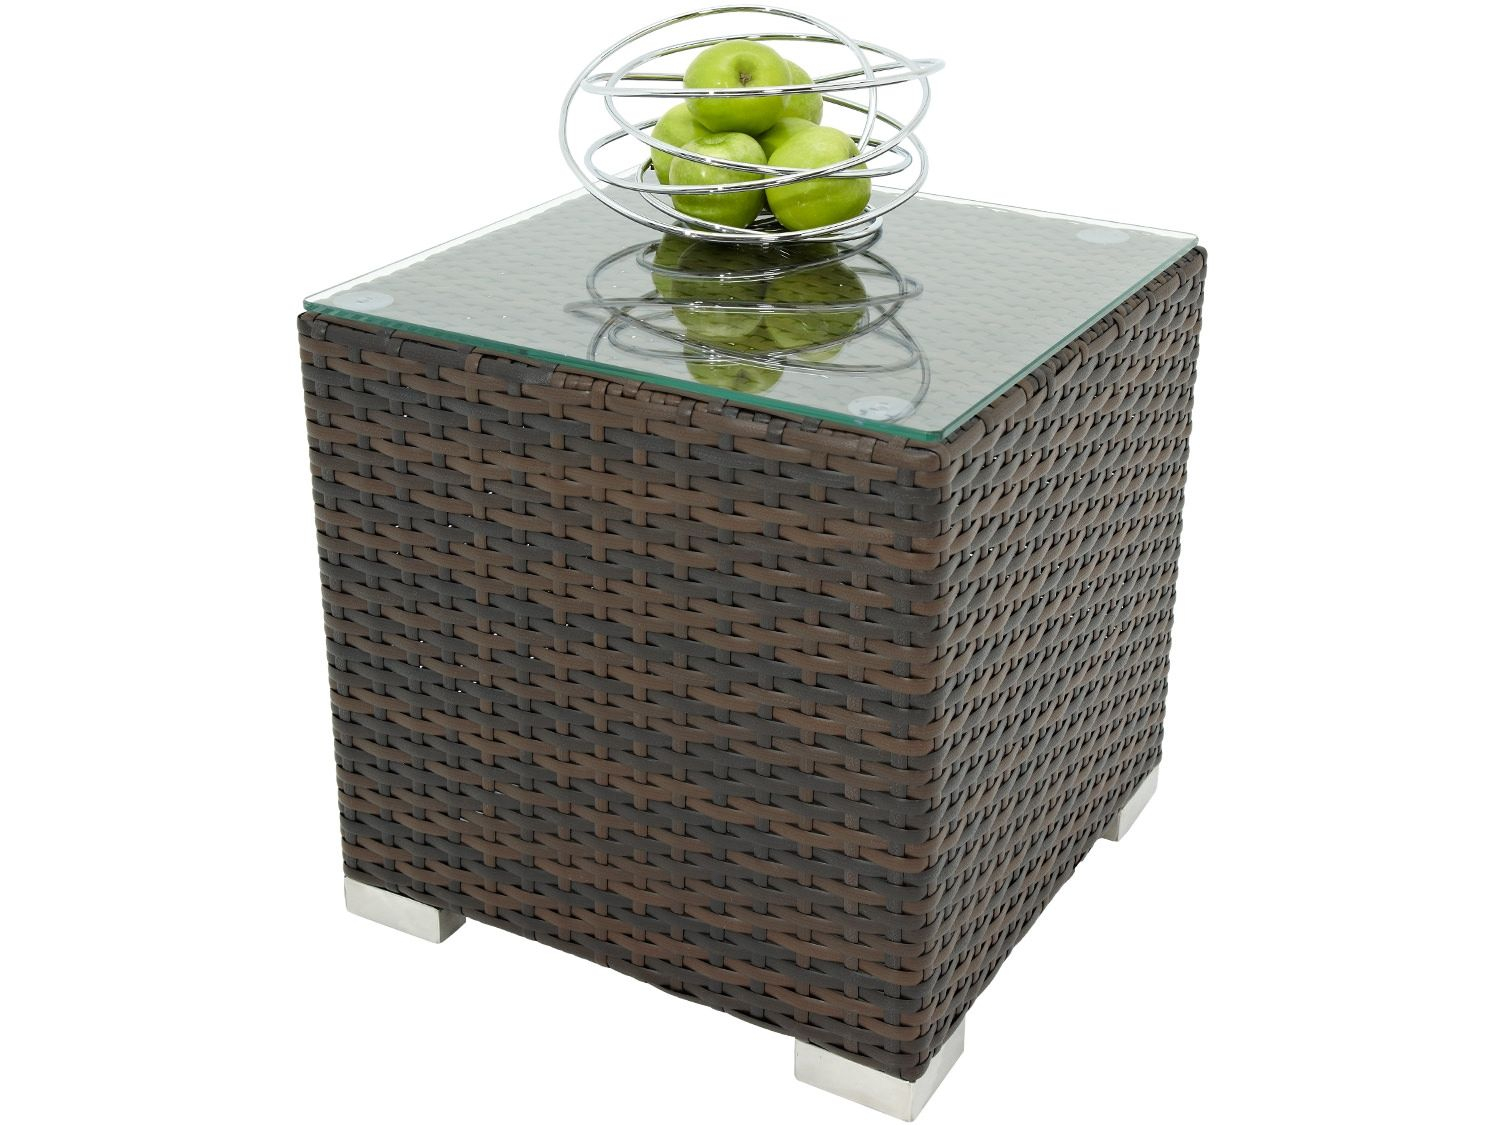 rattan side table coffee brown outdoor ethan allen pineapple oriental porcelain lamps miera diamond mirrored accent small room couch target lounge chairs unfinished square marble